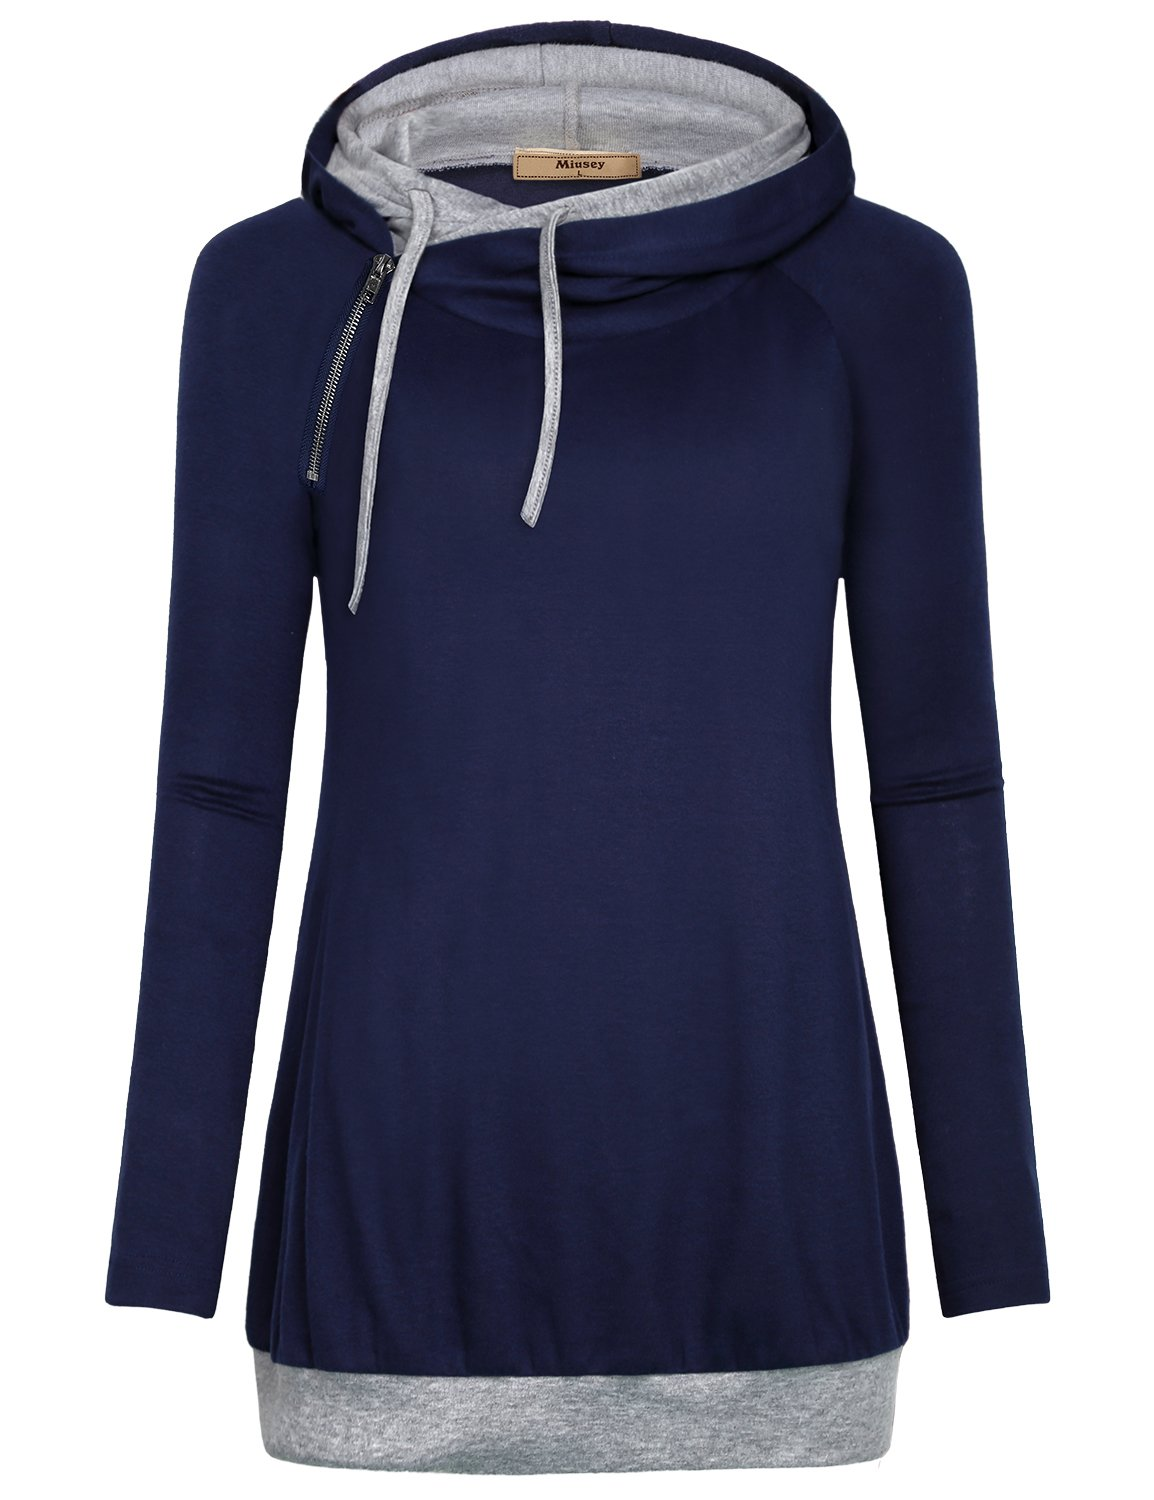 Miusey Womens Hooded Sweatshirts, Juniors Warm Sweaters Lightweight Long Sleeve Side Zipper Cowl Neck Relax Fit Travel Hoodie Banded Bottom Double Hood Tunic Tops Royal Blue XXL